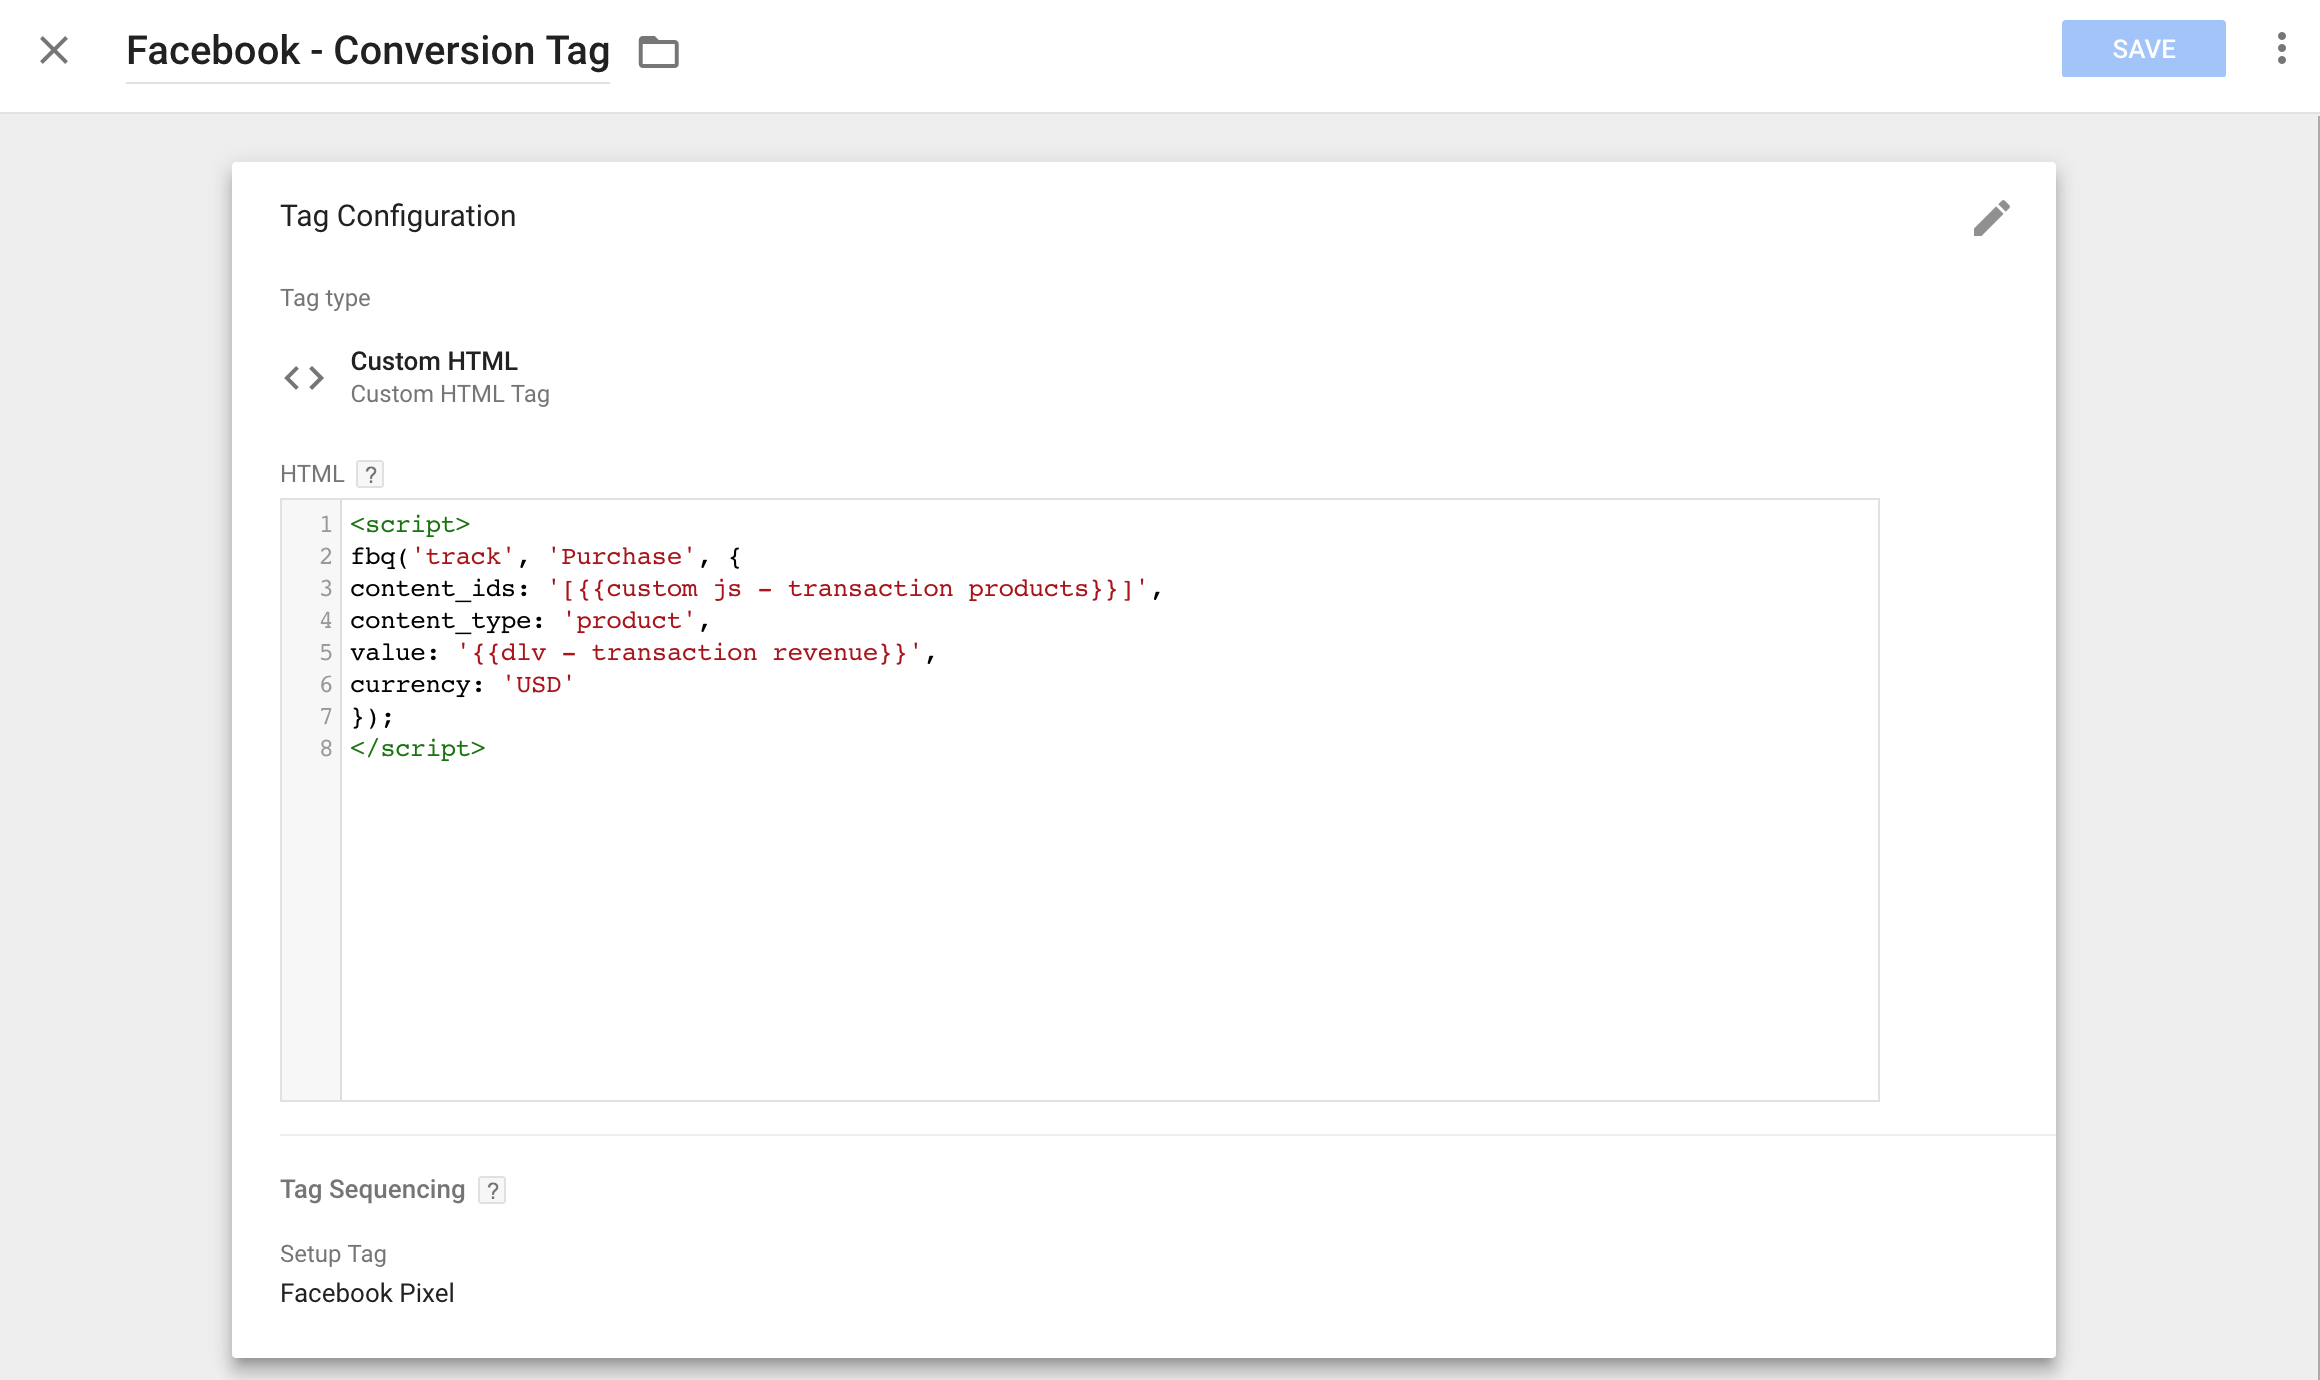 facebook conversion tag in google tag manager